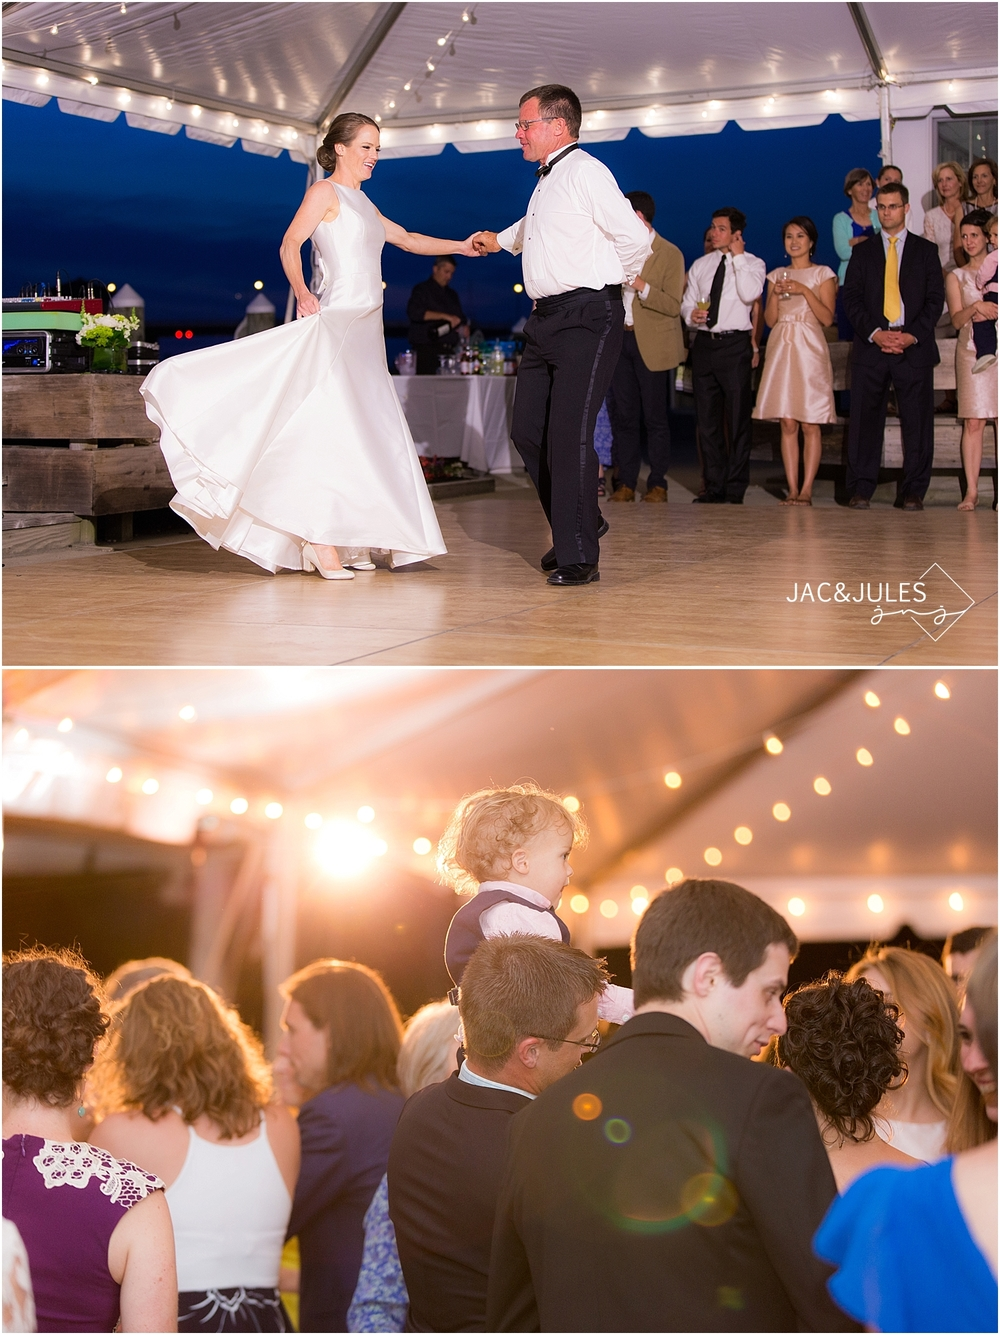 jacnjules photograph wedding reception at mantoloking yacht club in nj